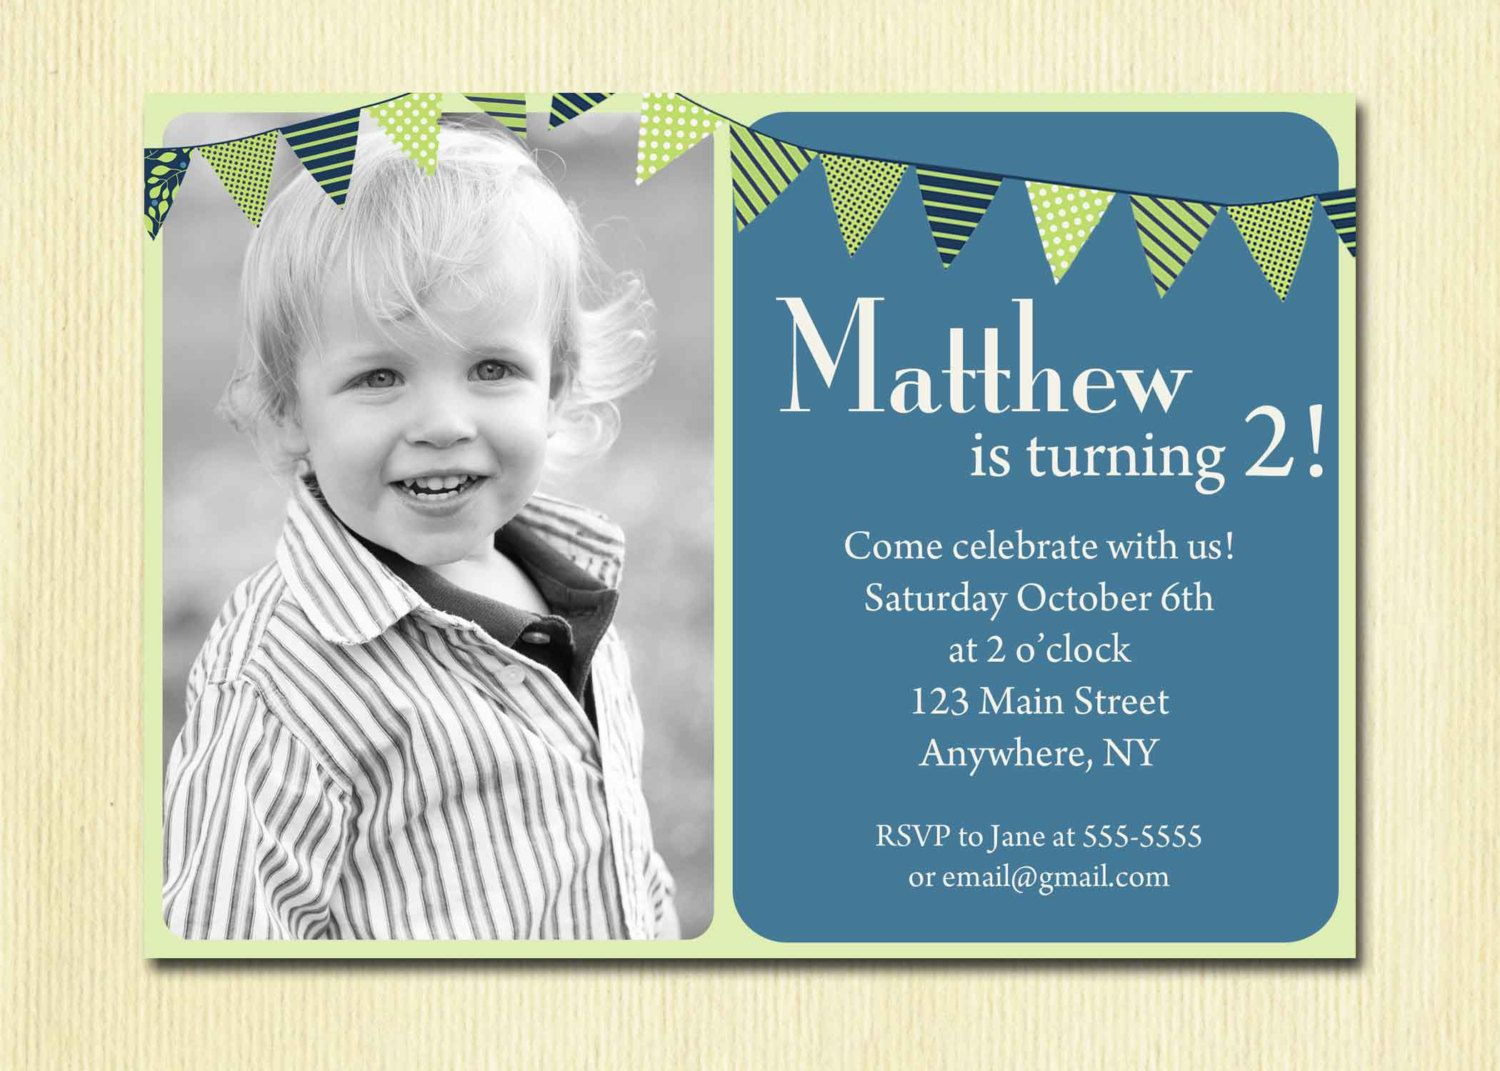 Birthday Invitation Cards For 3 Year Old Boy 83d38efeabb30d039447f5322de0c7e1